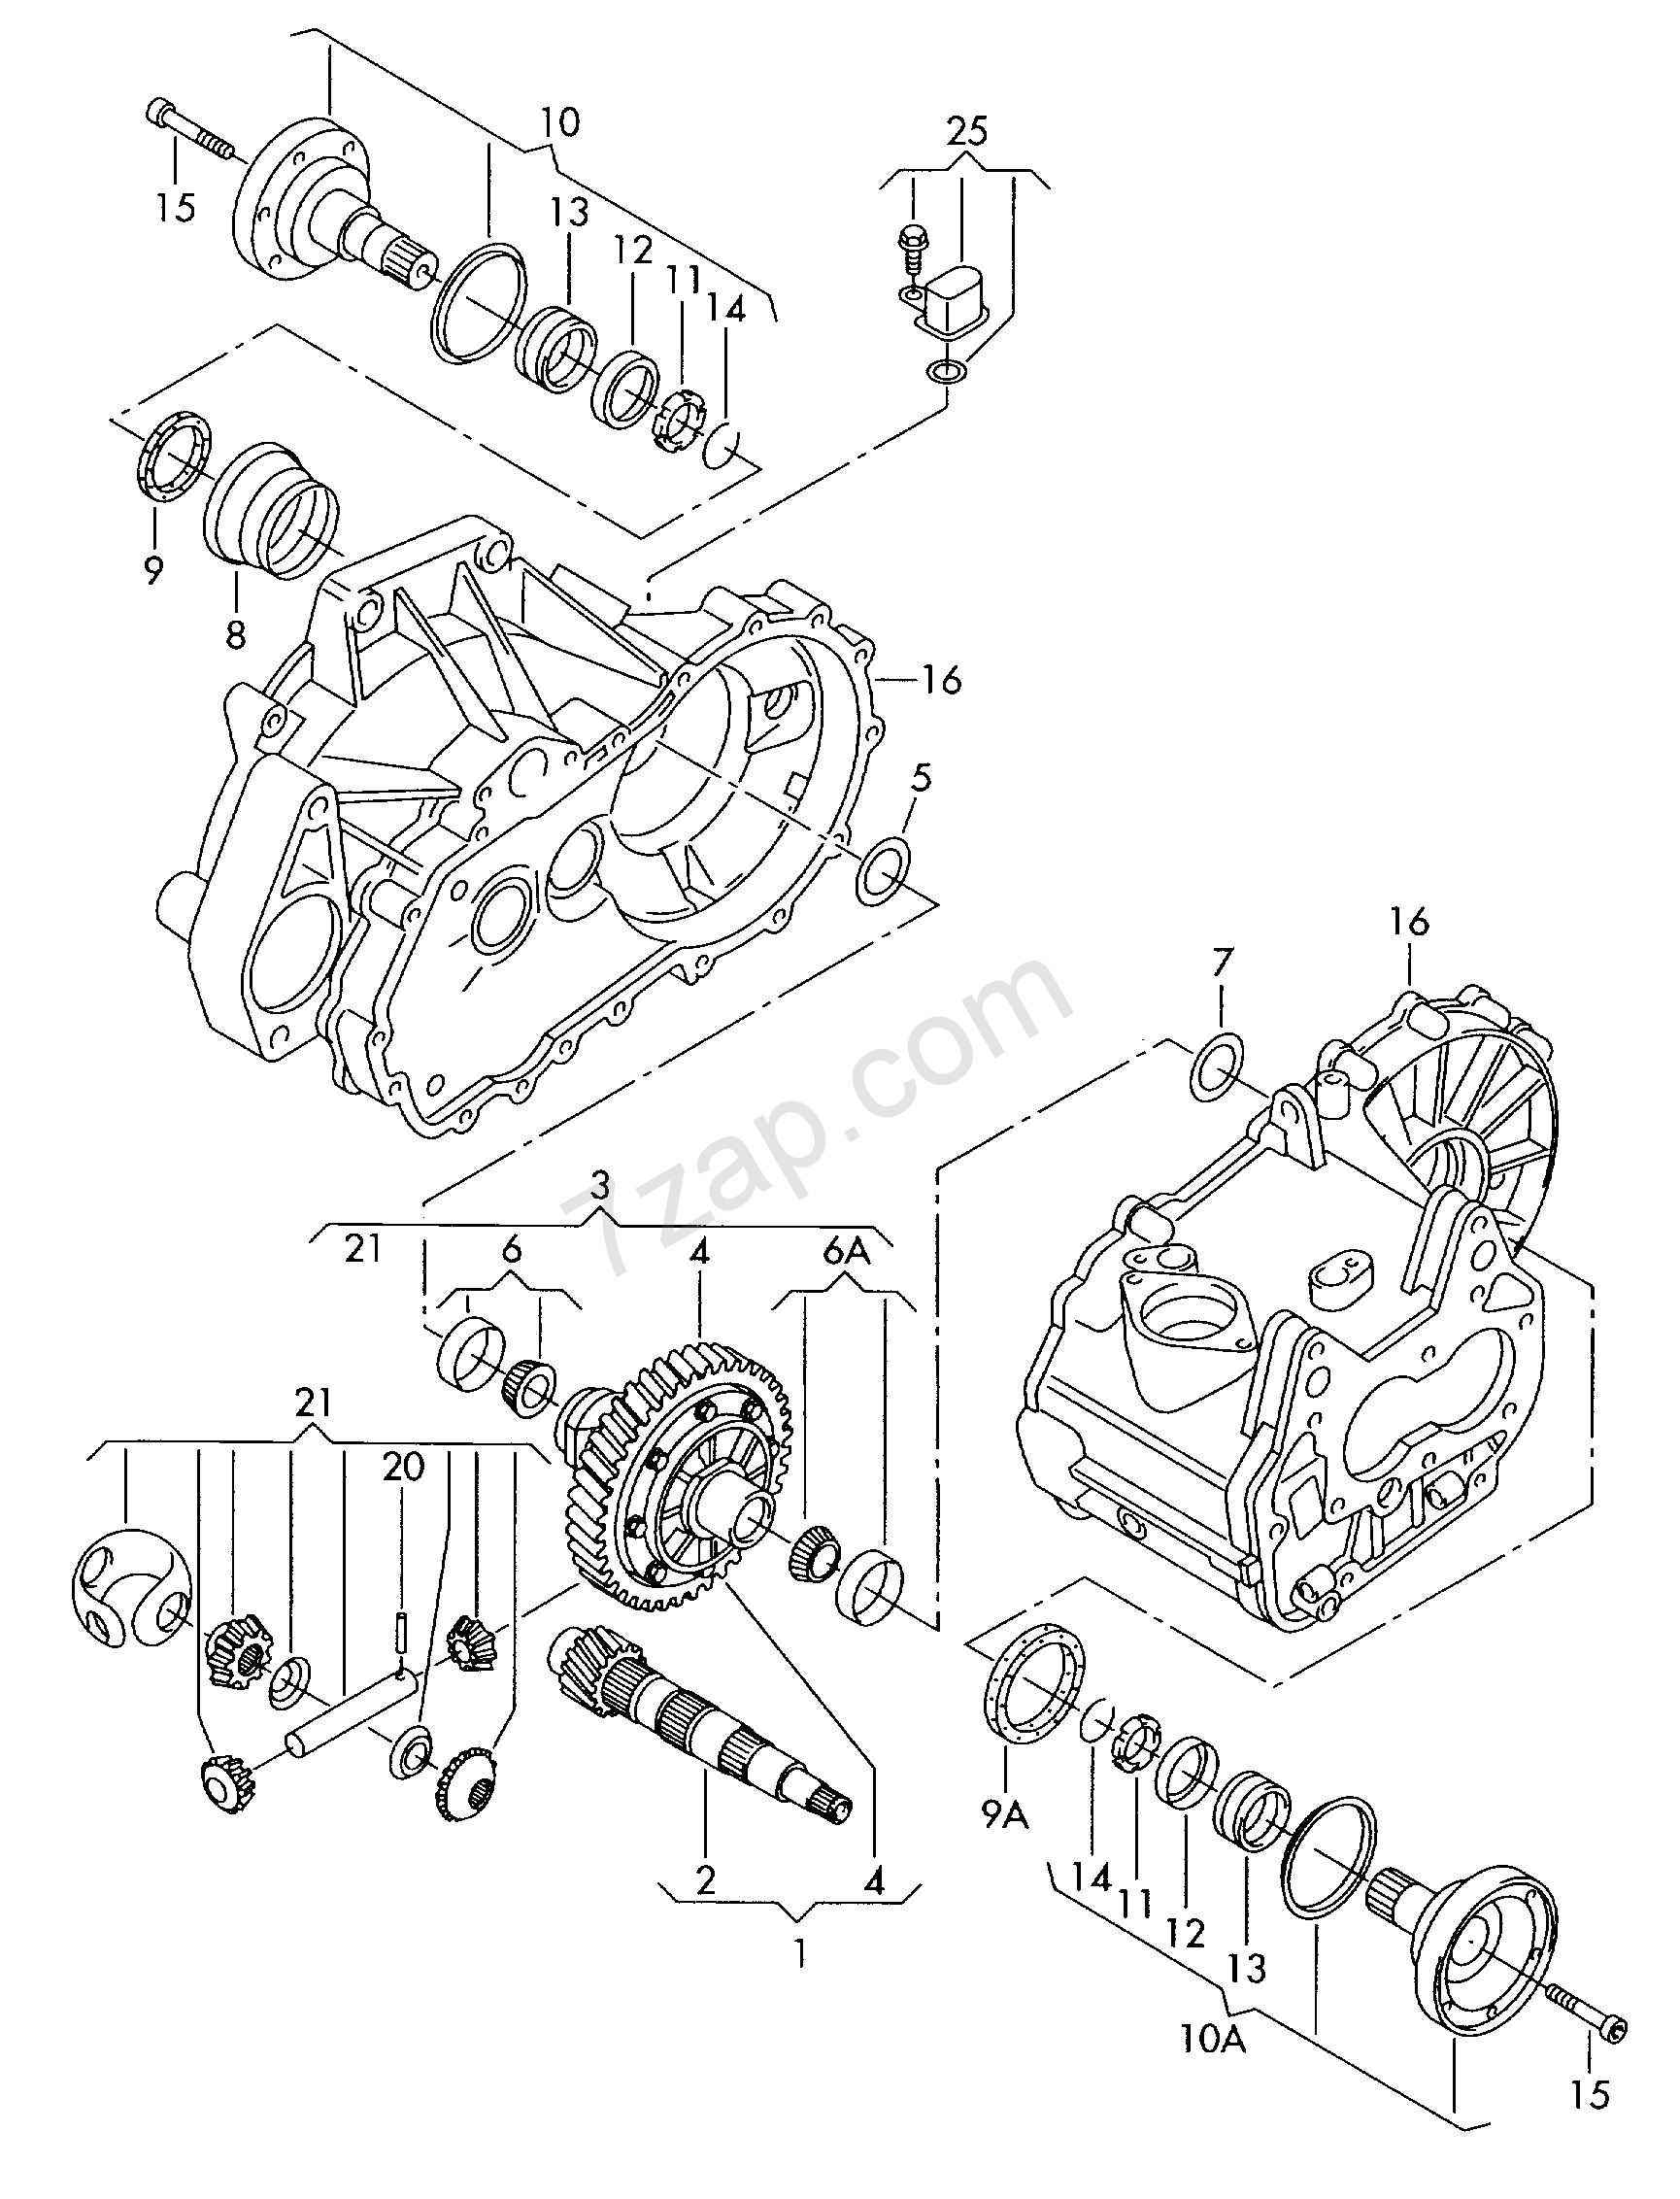 differential; pinion gear set; for 5 speed manual